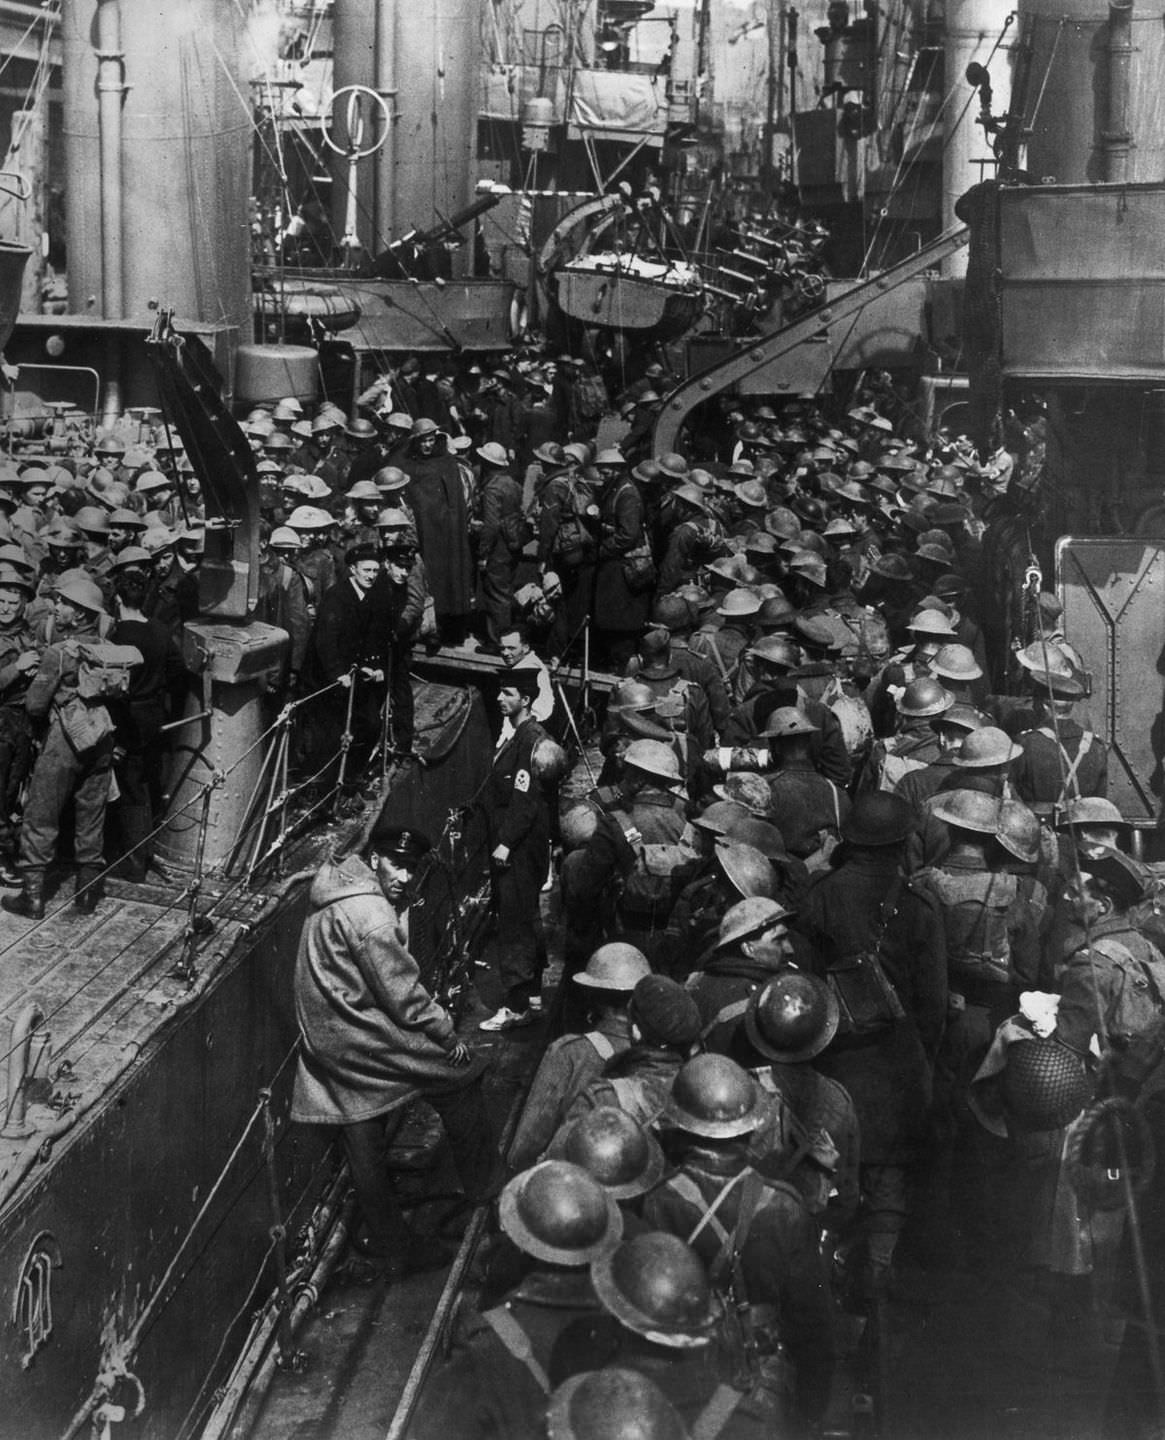 Allied troops crowd aboard ships during the evacuation of Dunkirk